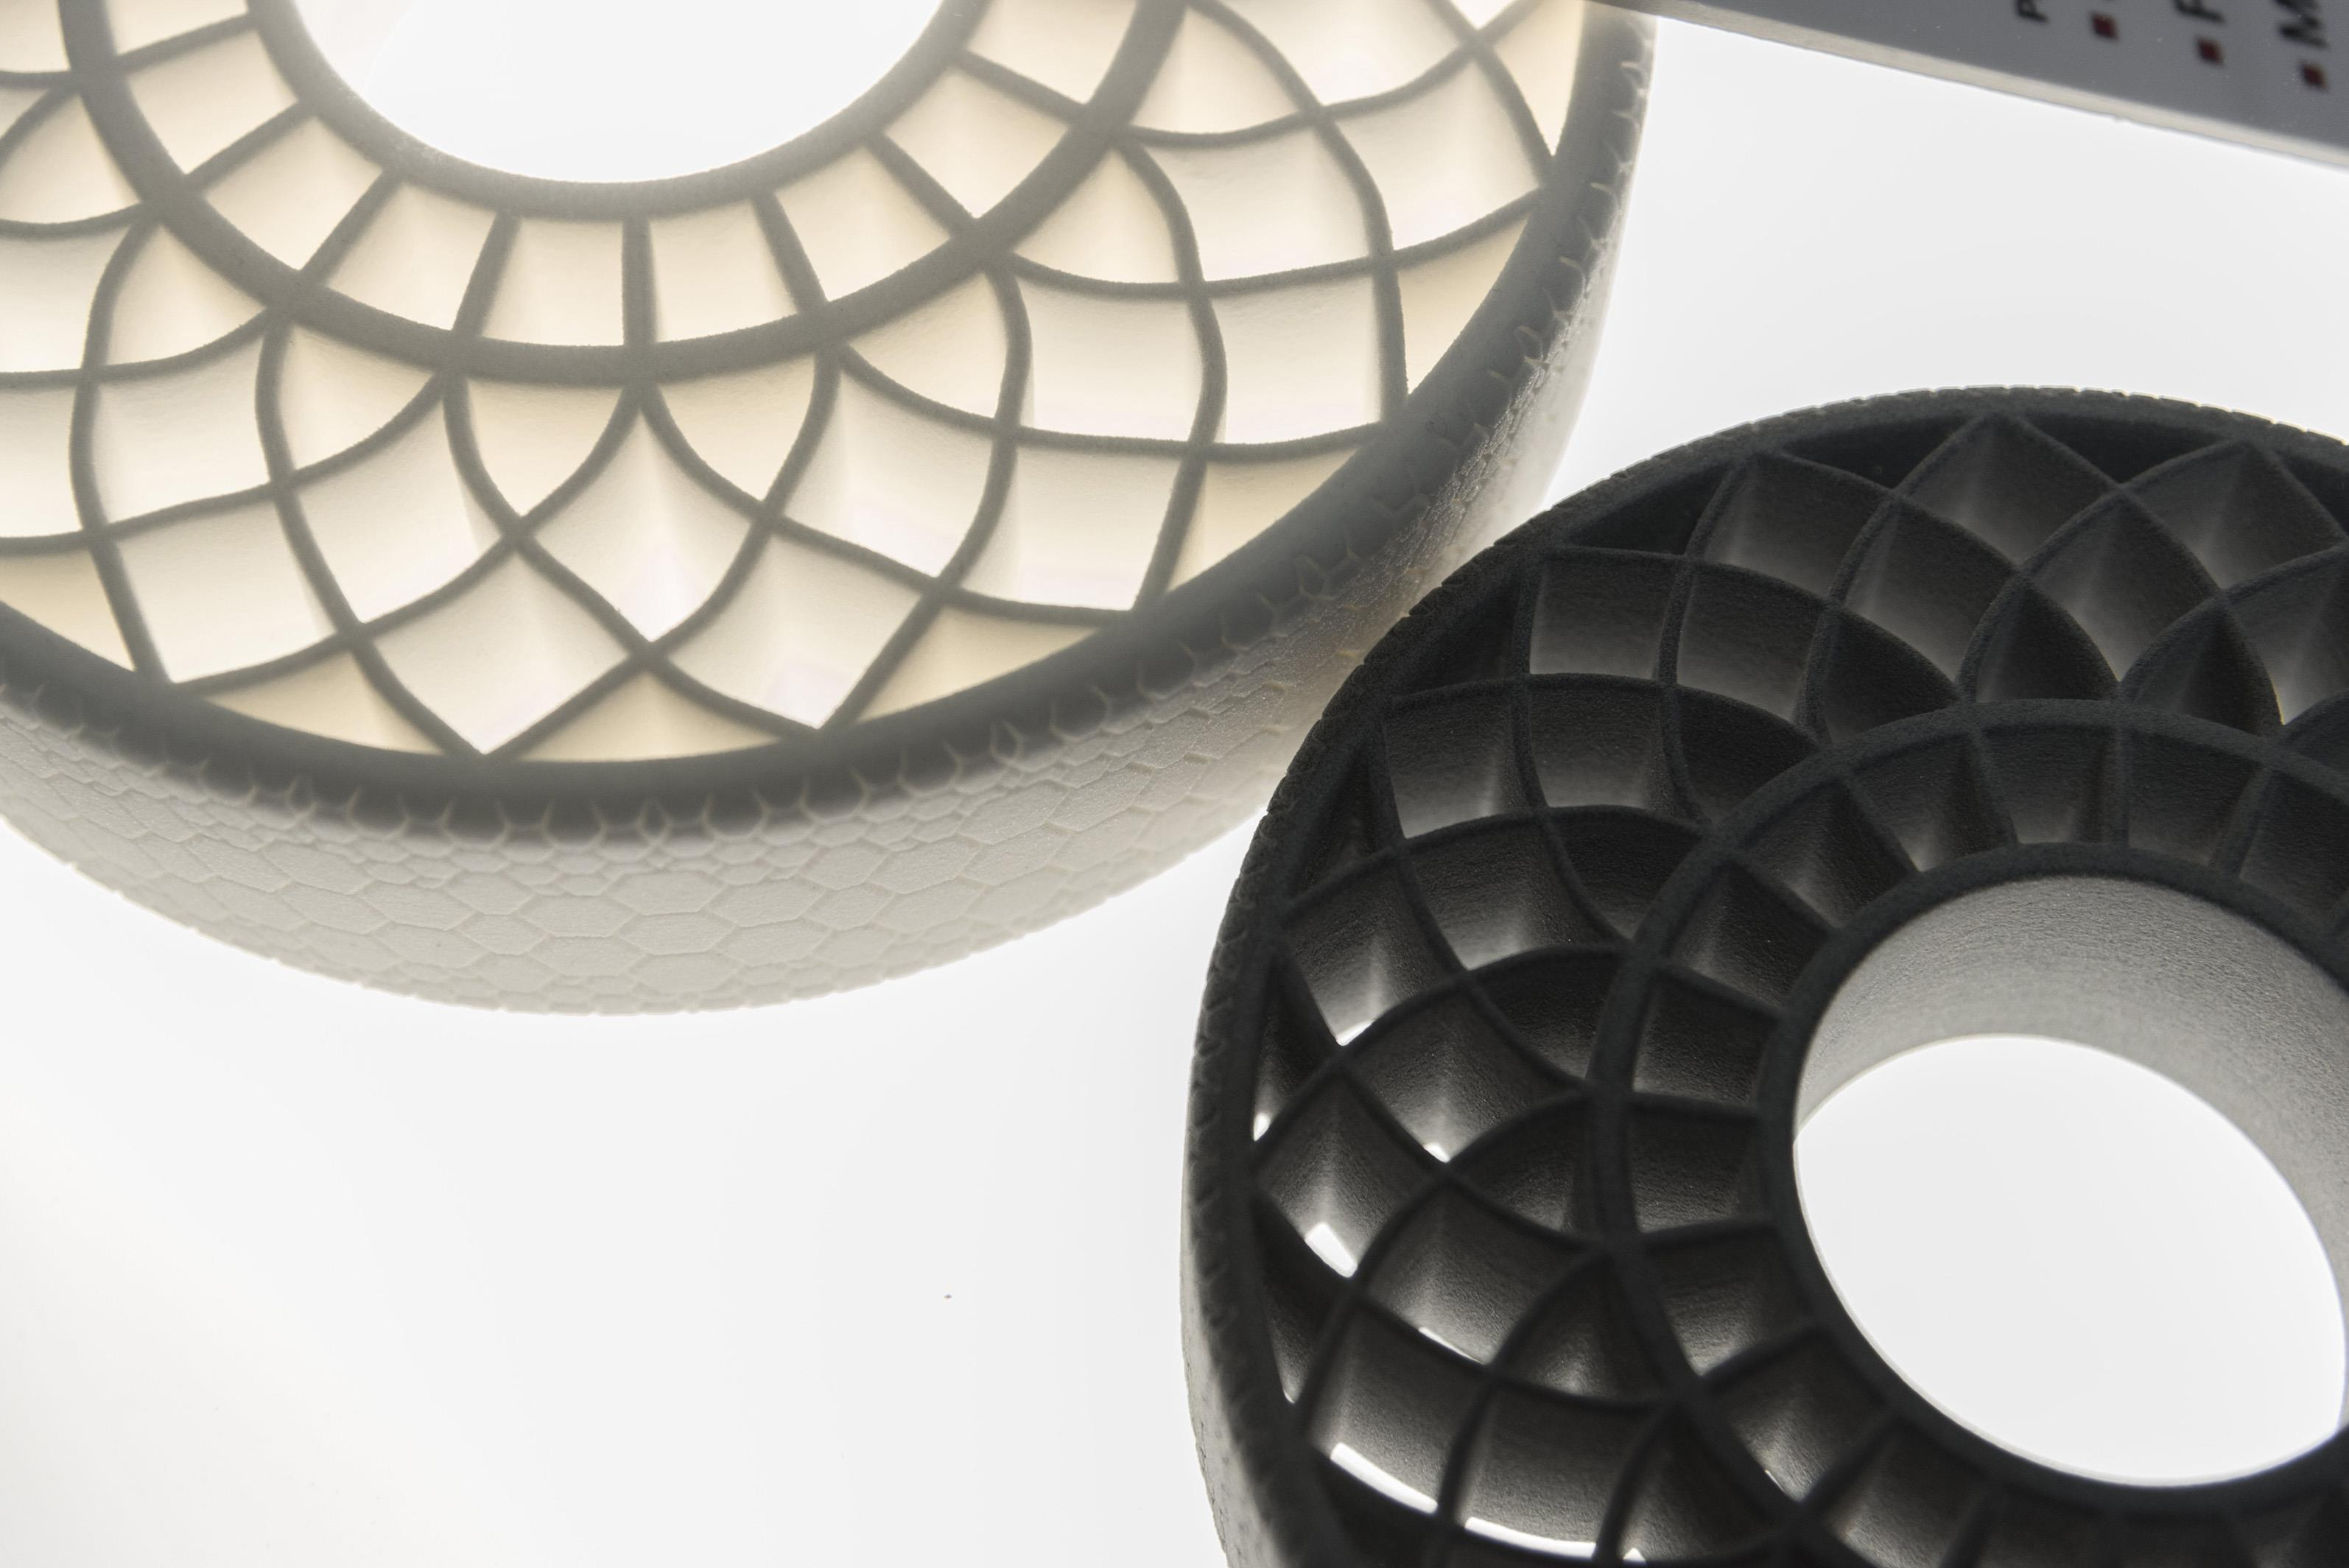 Two airless tyres that were created with 3D printing technologies using thermoplastic polyurethane from BASF (Source: BASF)